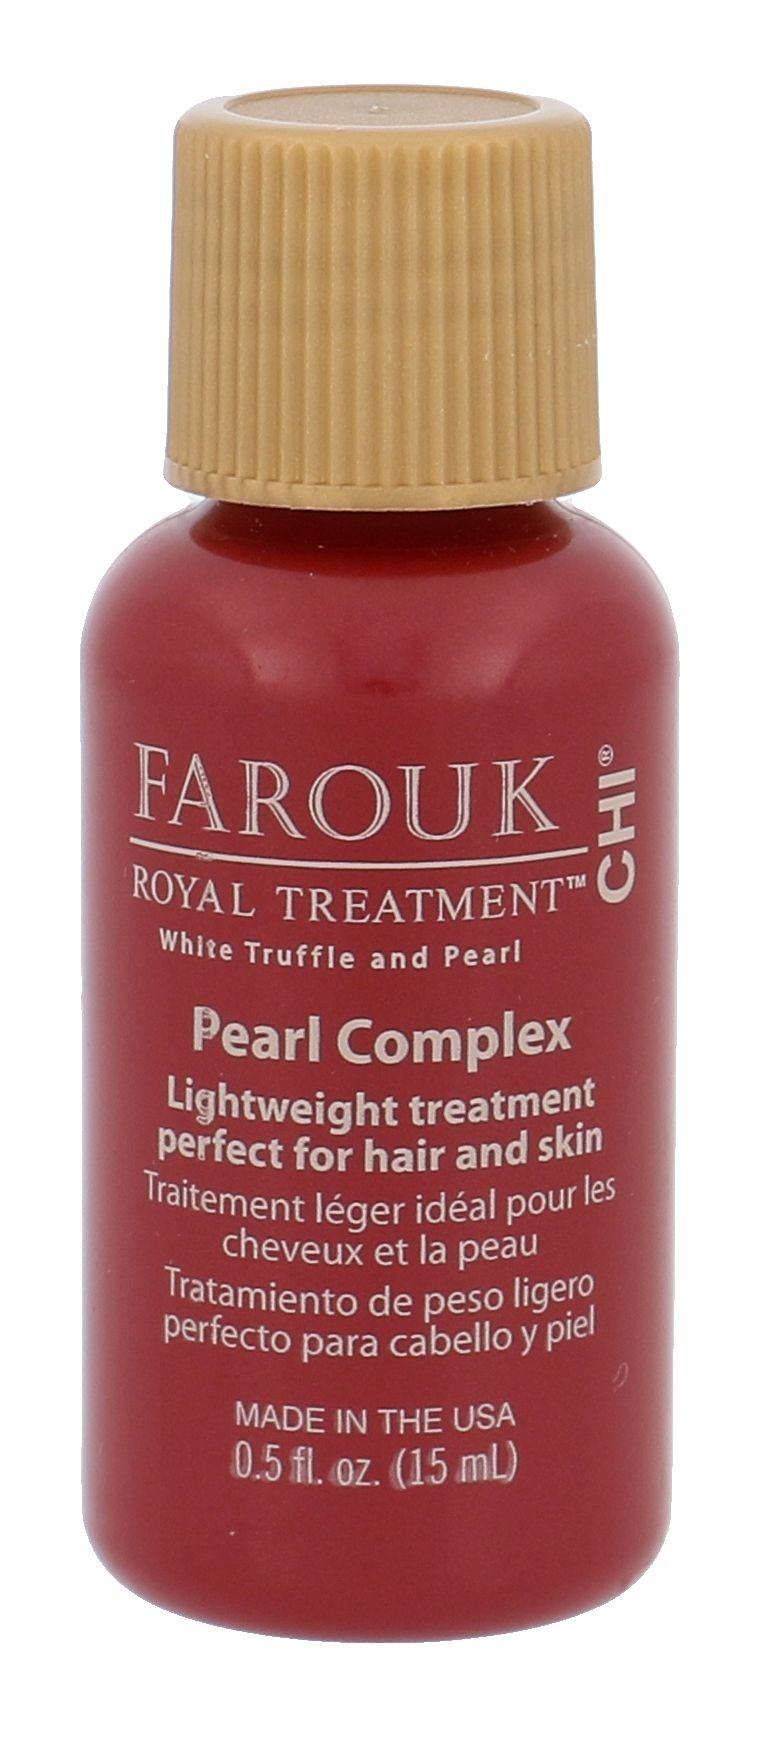 Farouk Systems CHI Royal Treatment Cosmetic 15ml  Pearl Complex